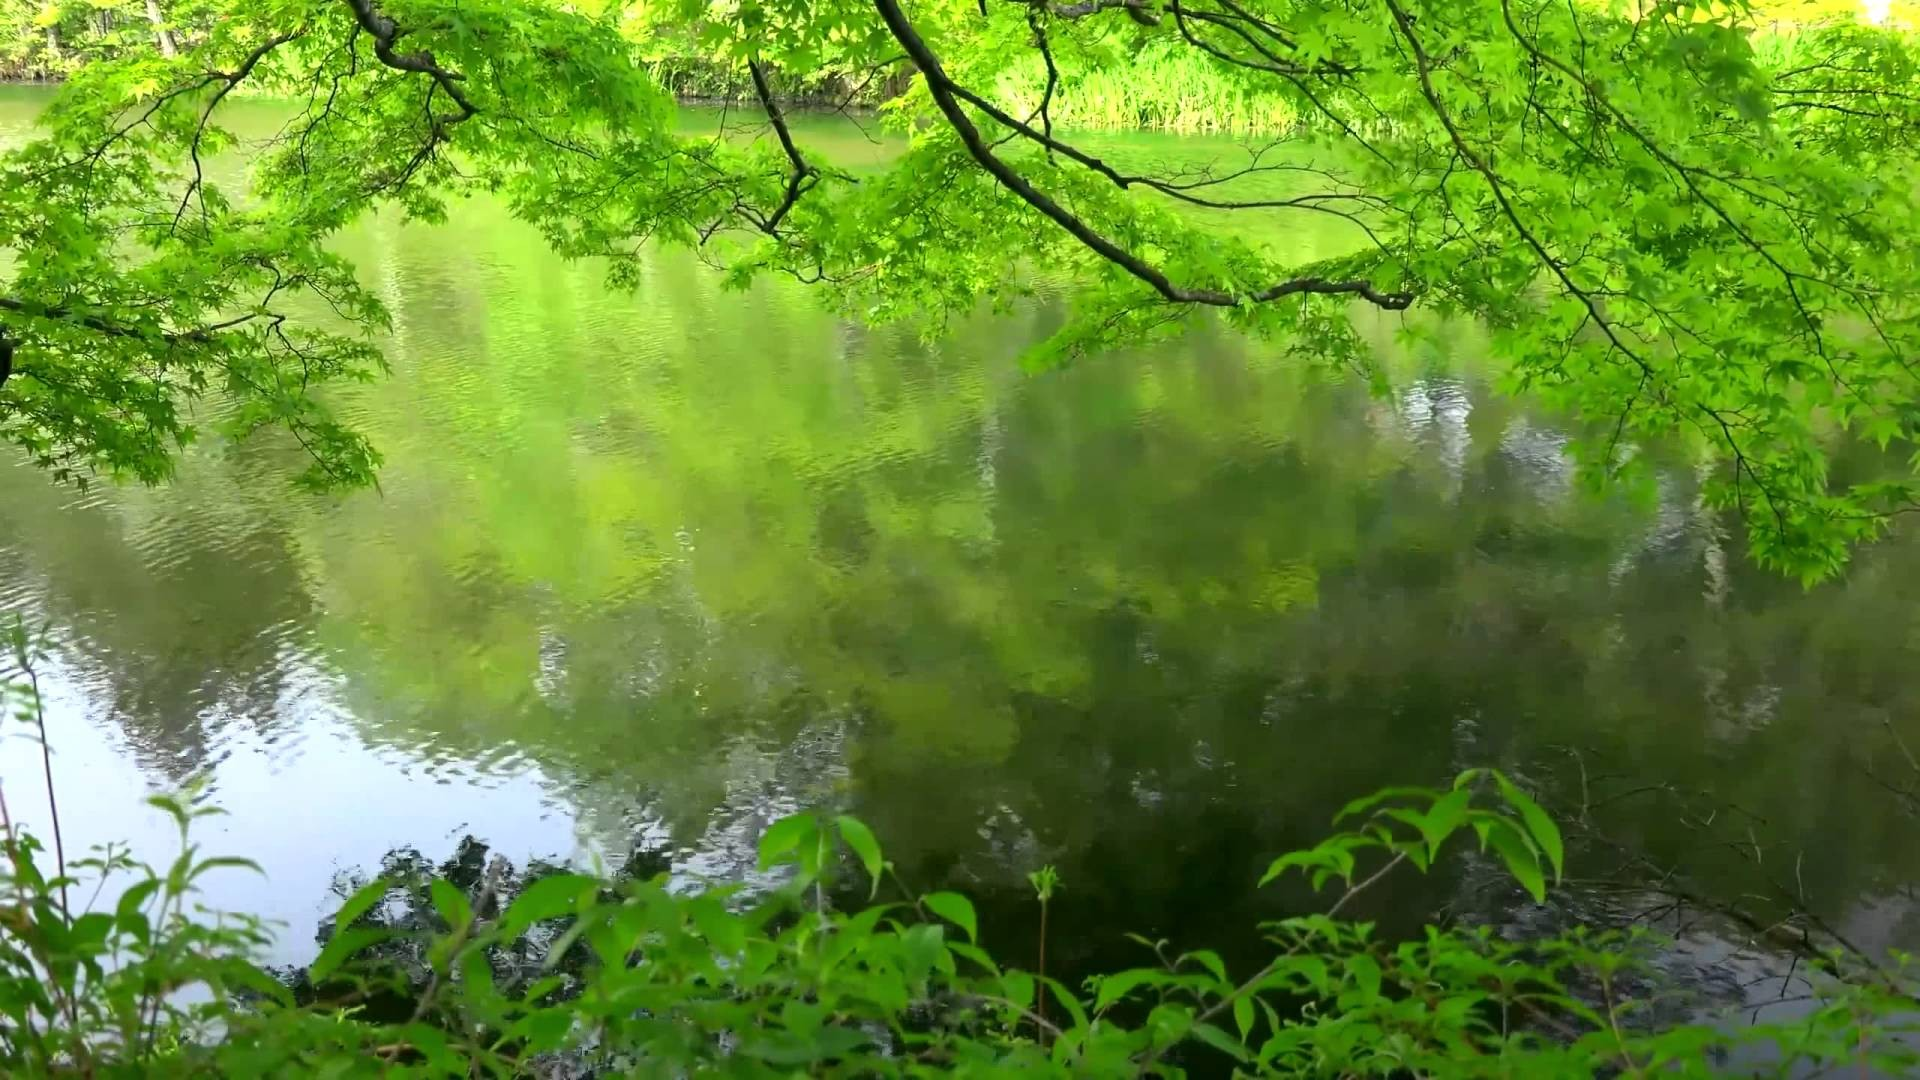 Nature Background Hd Download Free Cool Full Hd Backgrounds For